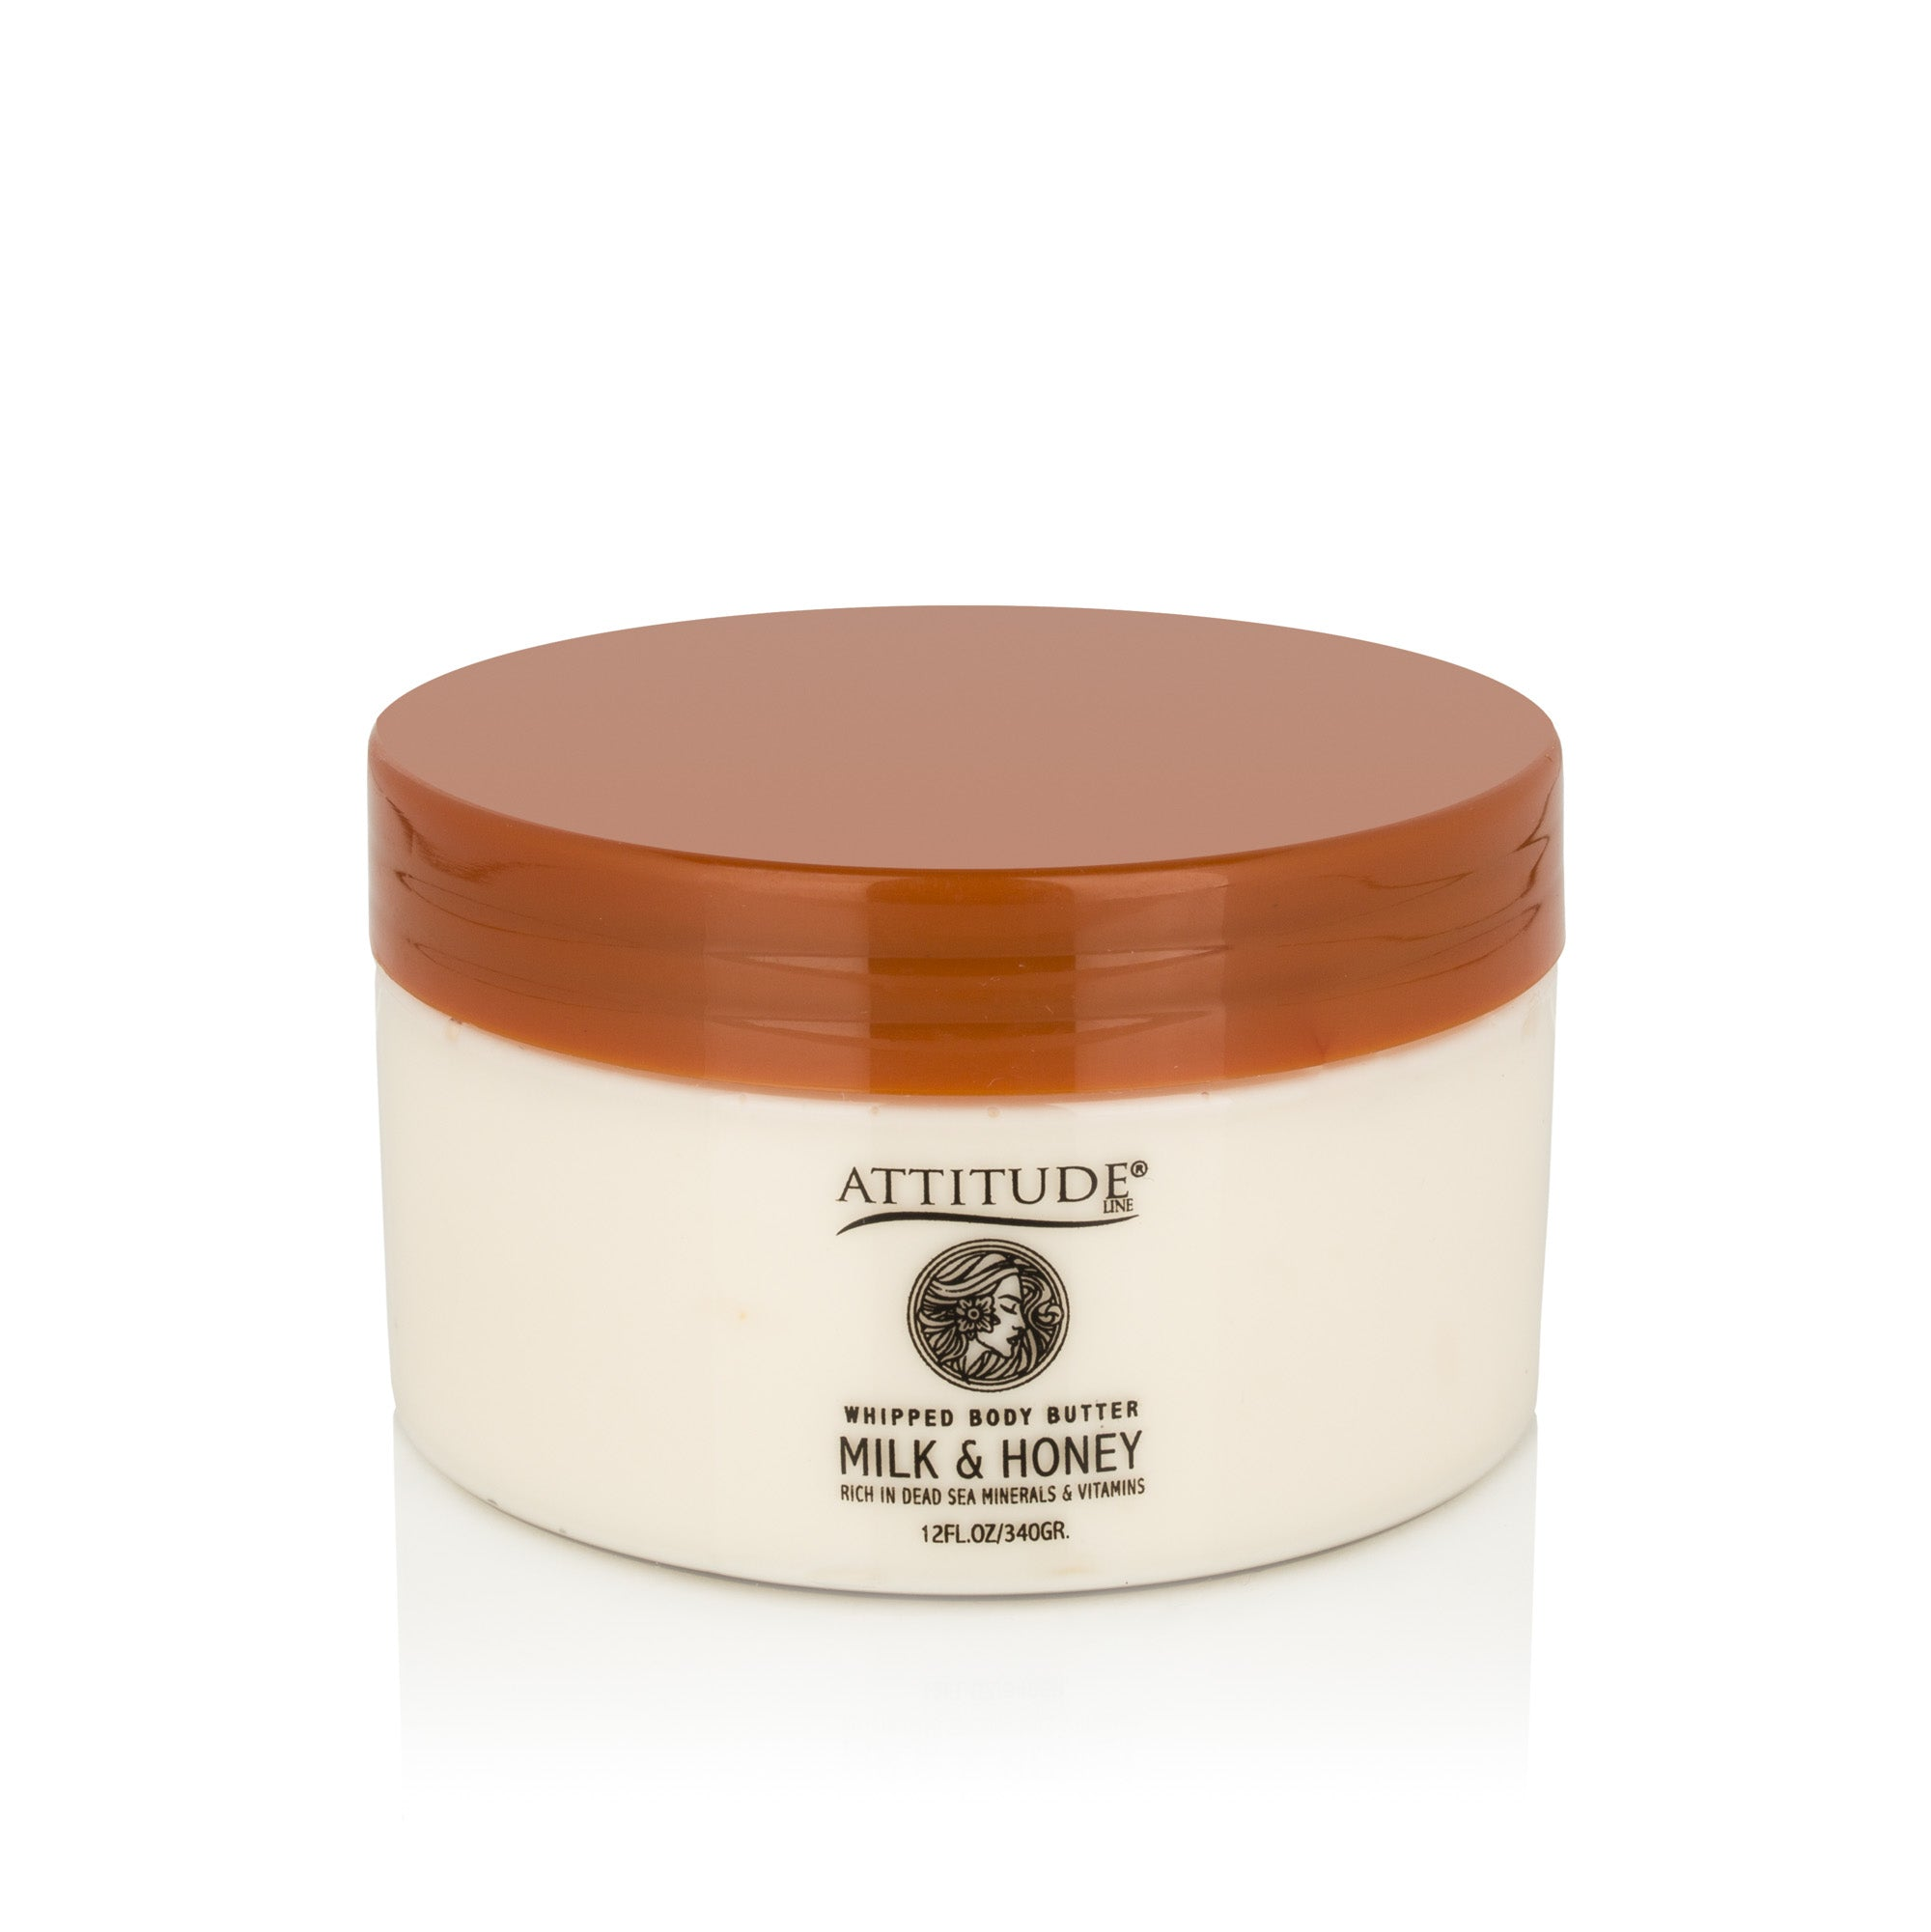 ATTITUDE LINE - Milk & Honey Whipped Rich Body Butter